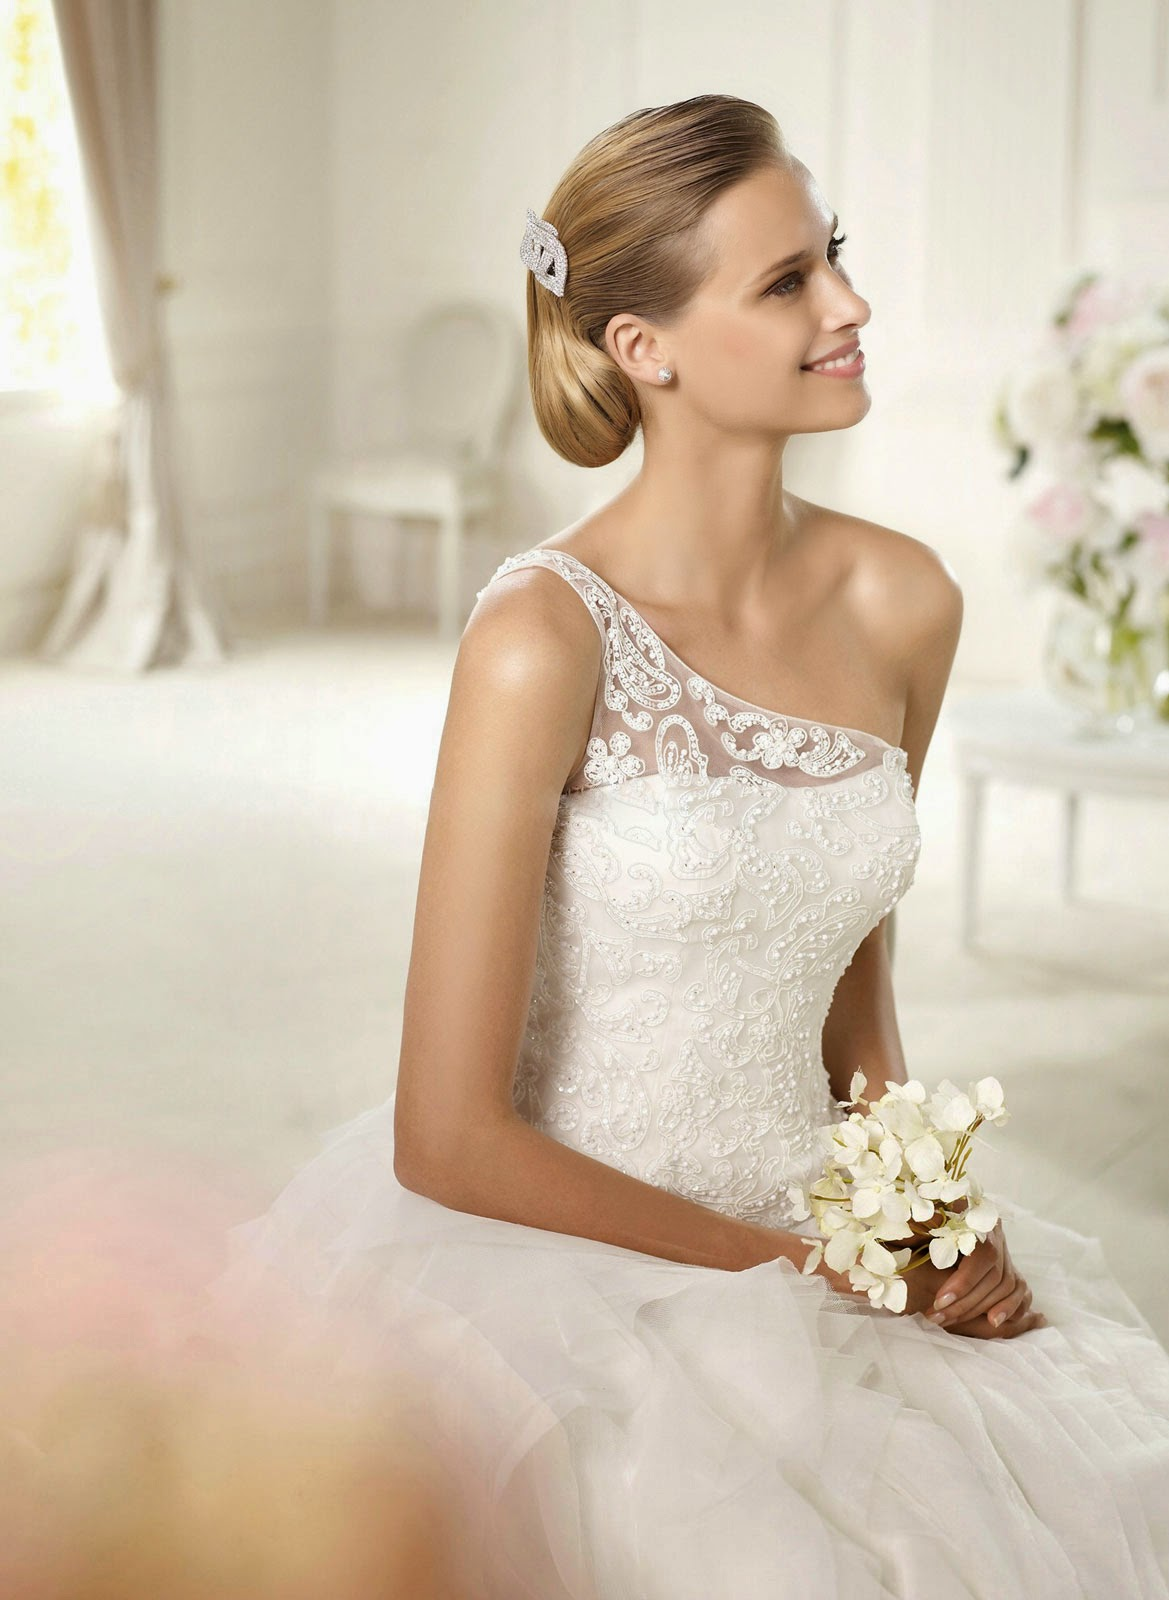 Simple white ivory wedding dresses photos concepts ideas for Simple white dresses for wedding